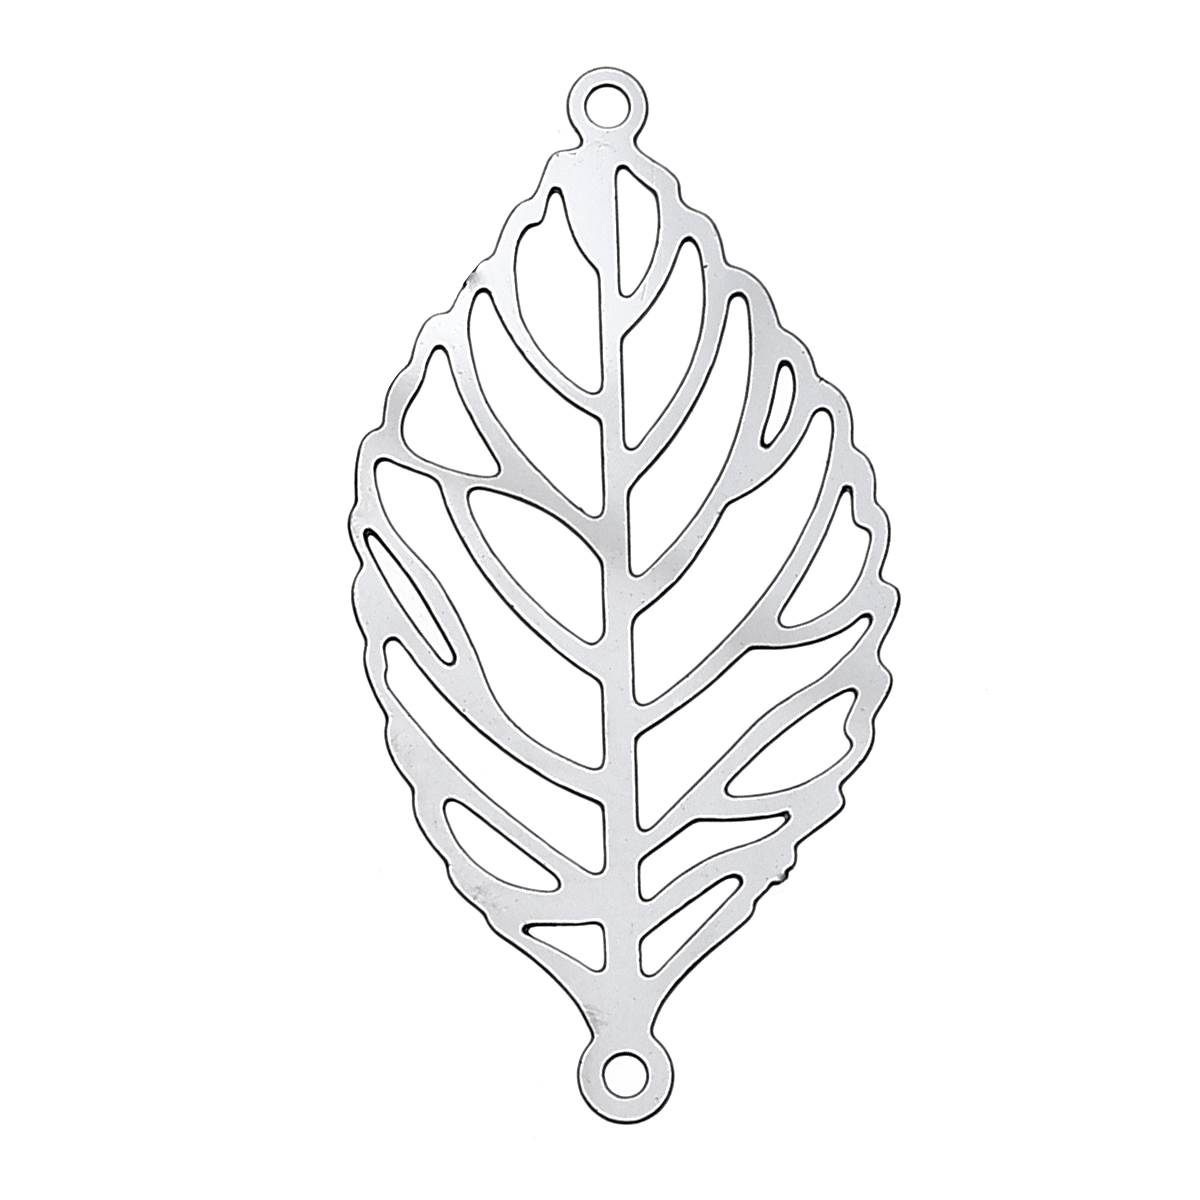 DoreenBeads Stainless Steel Connectors Findings Leaf Silver Tone Hollow 30mm(1 1/8)x 15mm(5/8),30 PCs